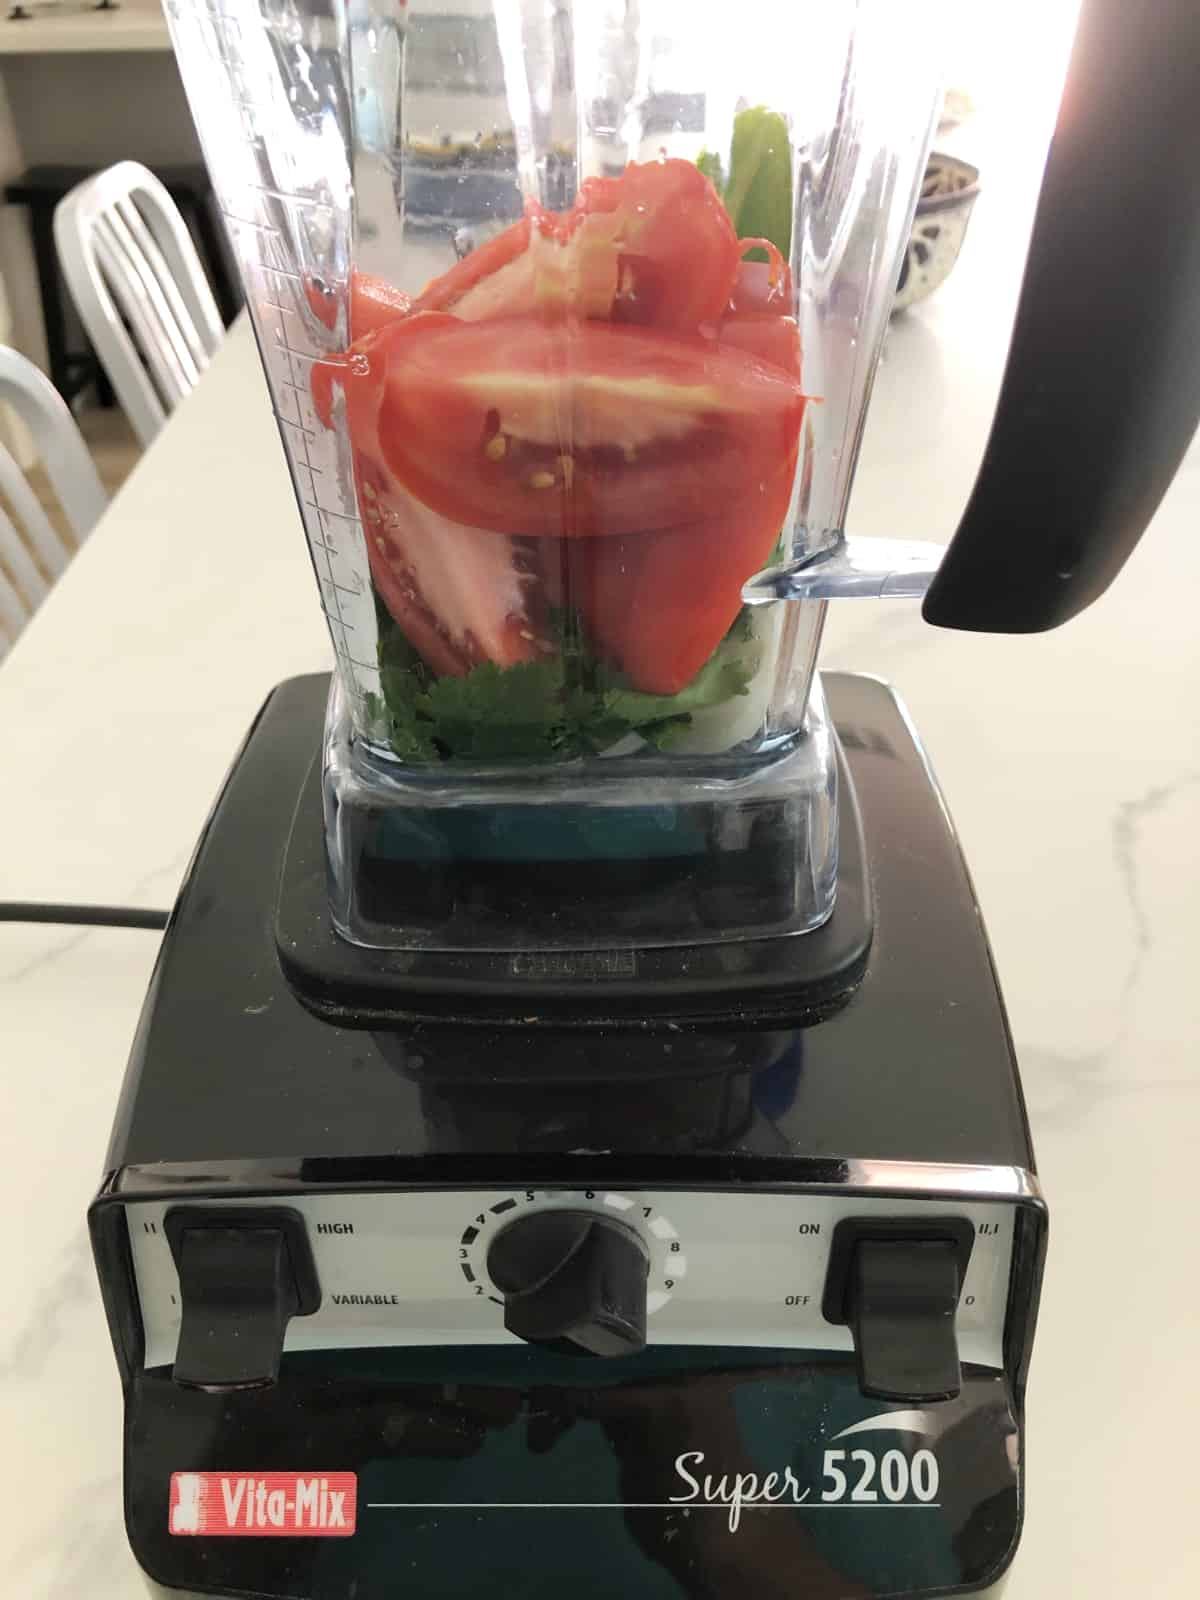 Tomatoes, cilantro and onion in Vitamix blender container.